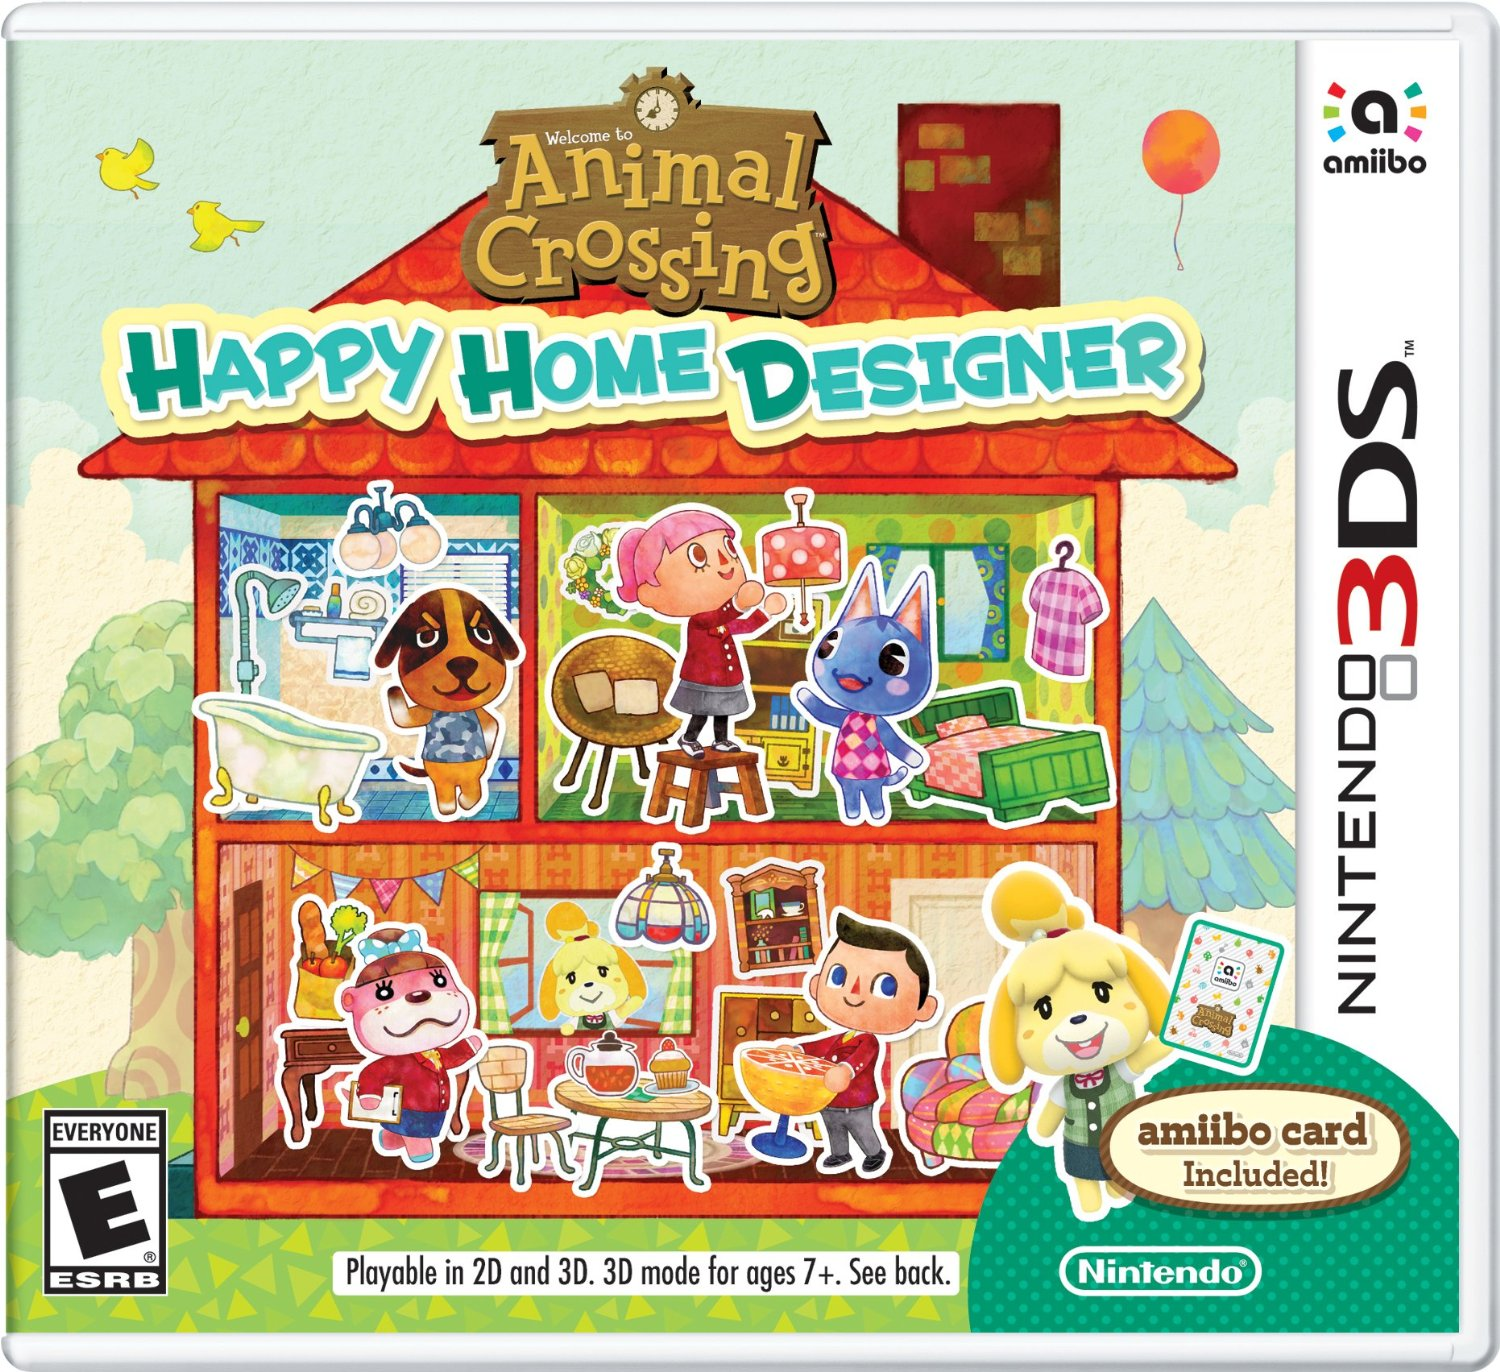 animal crossing happy home designer review - Home Design Game